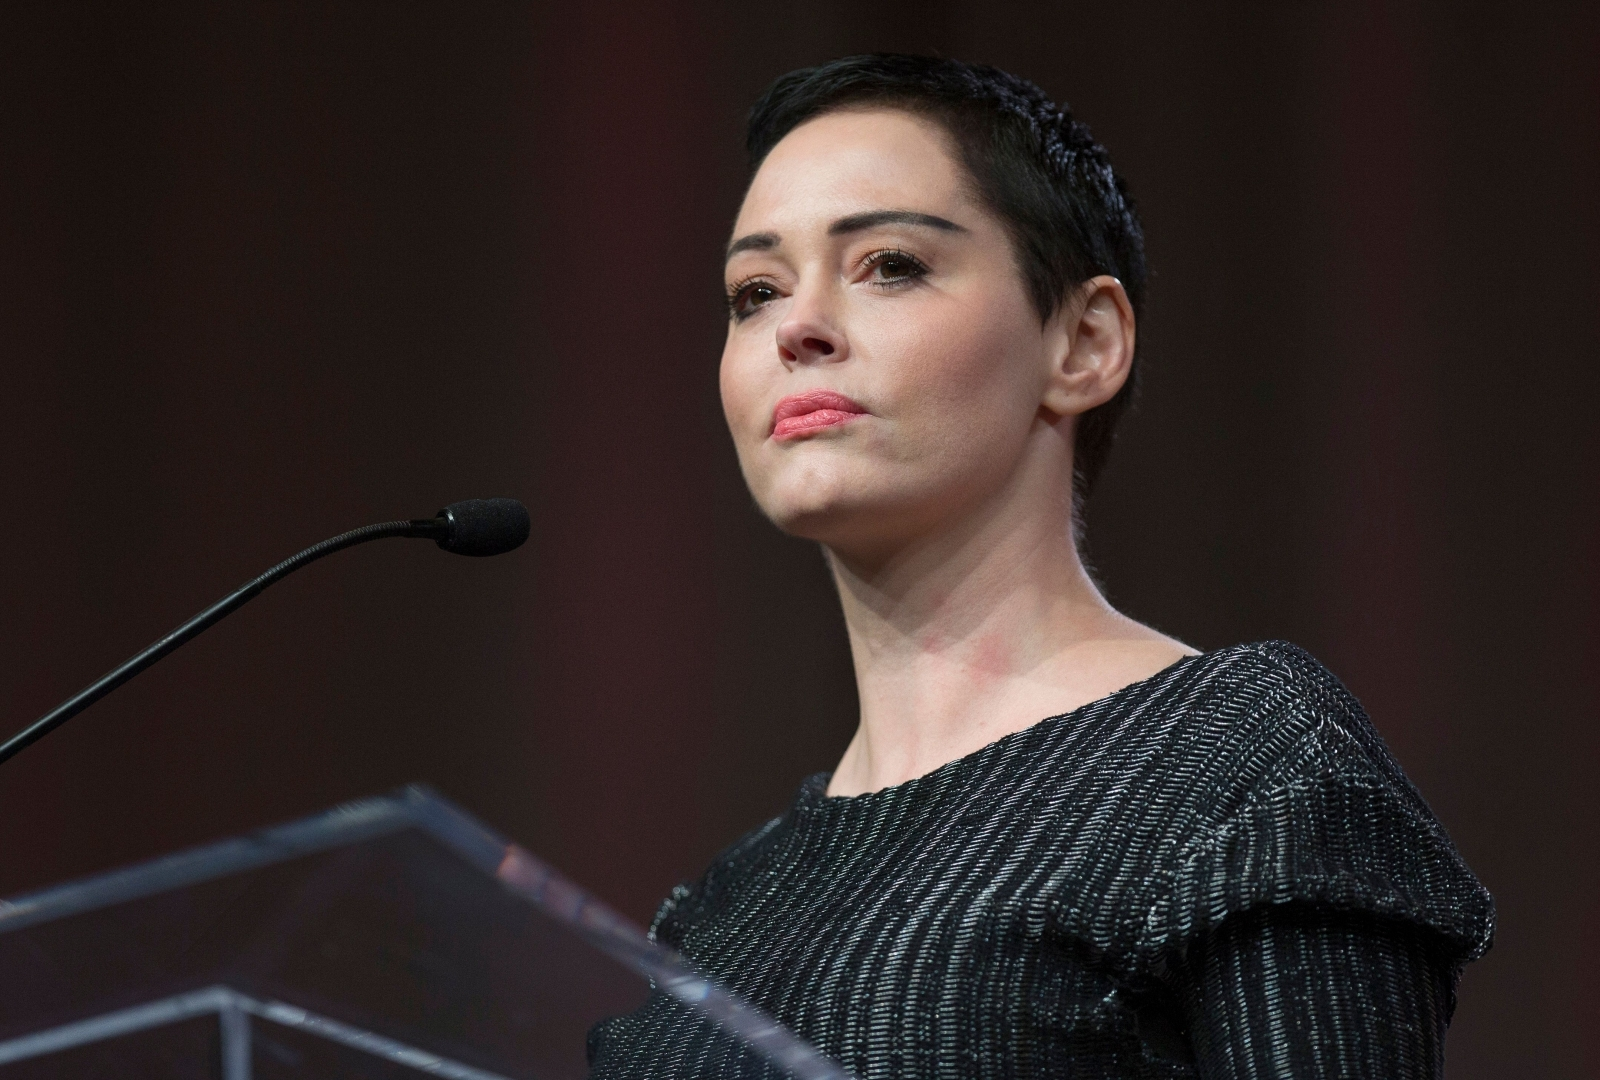 Rose McGowan Outs Another Hollywood 'Predator': 'I Was Molested At 15'